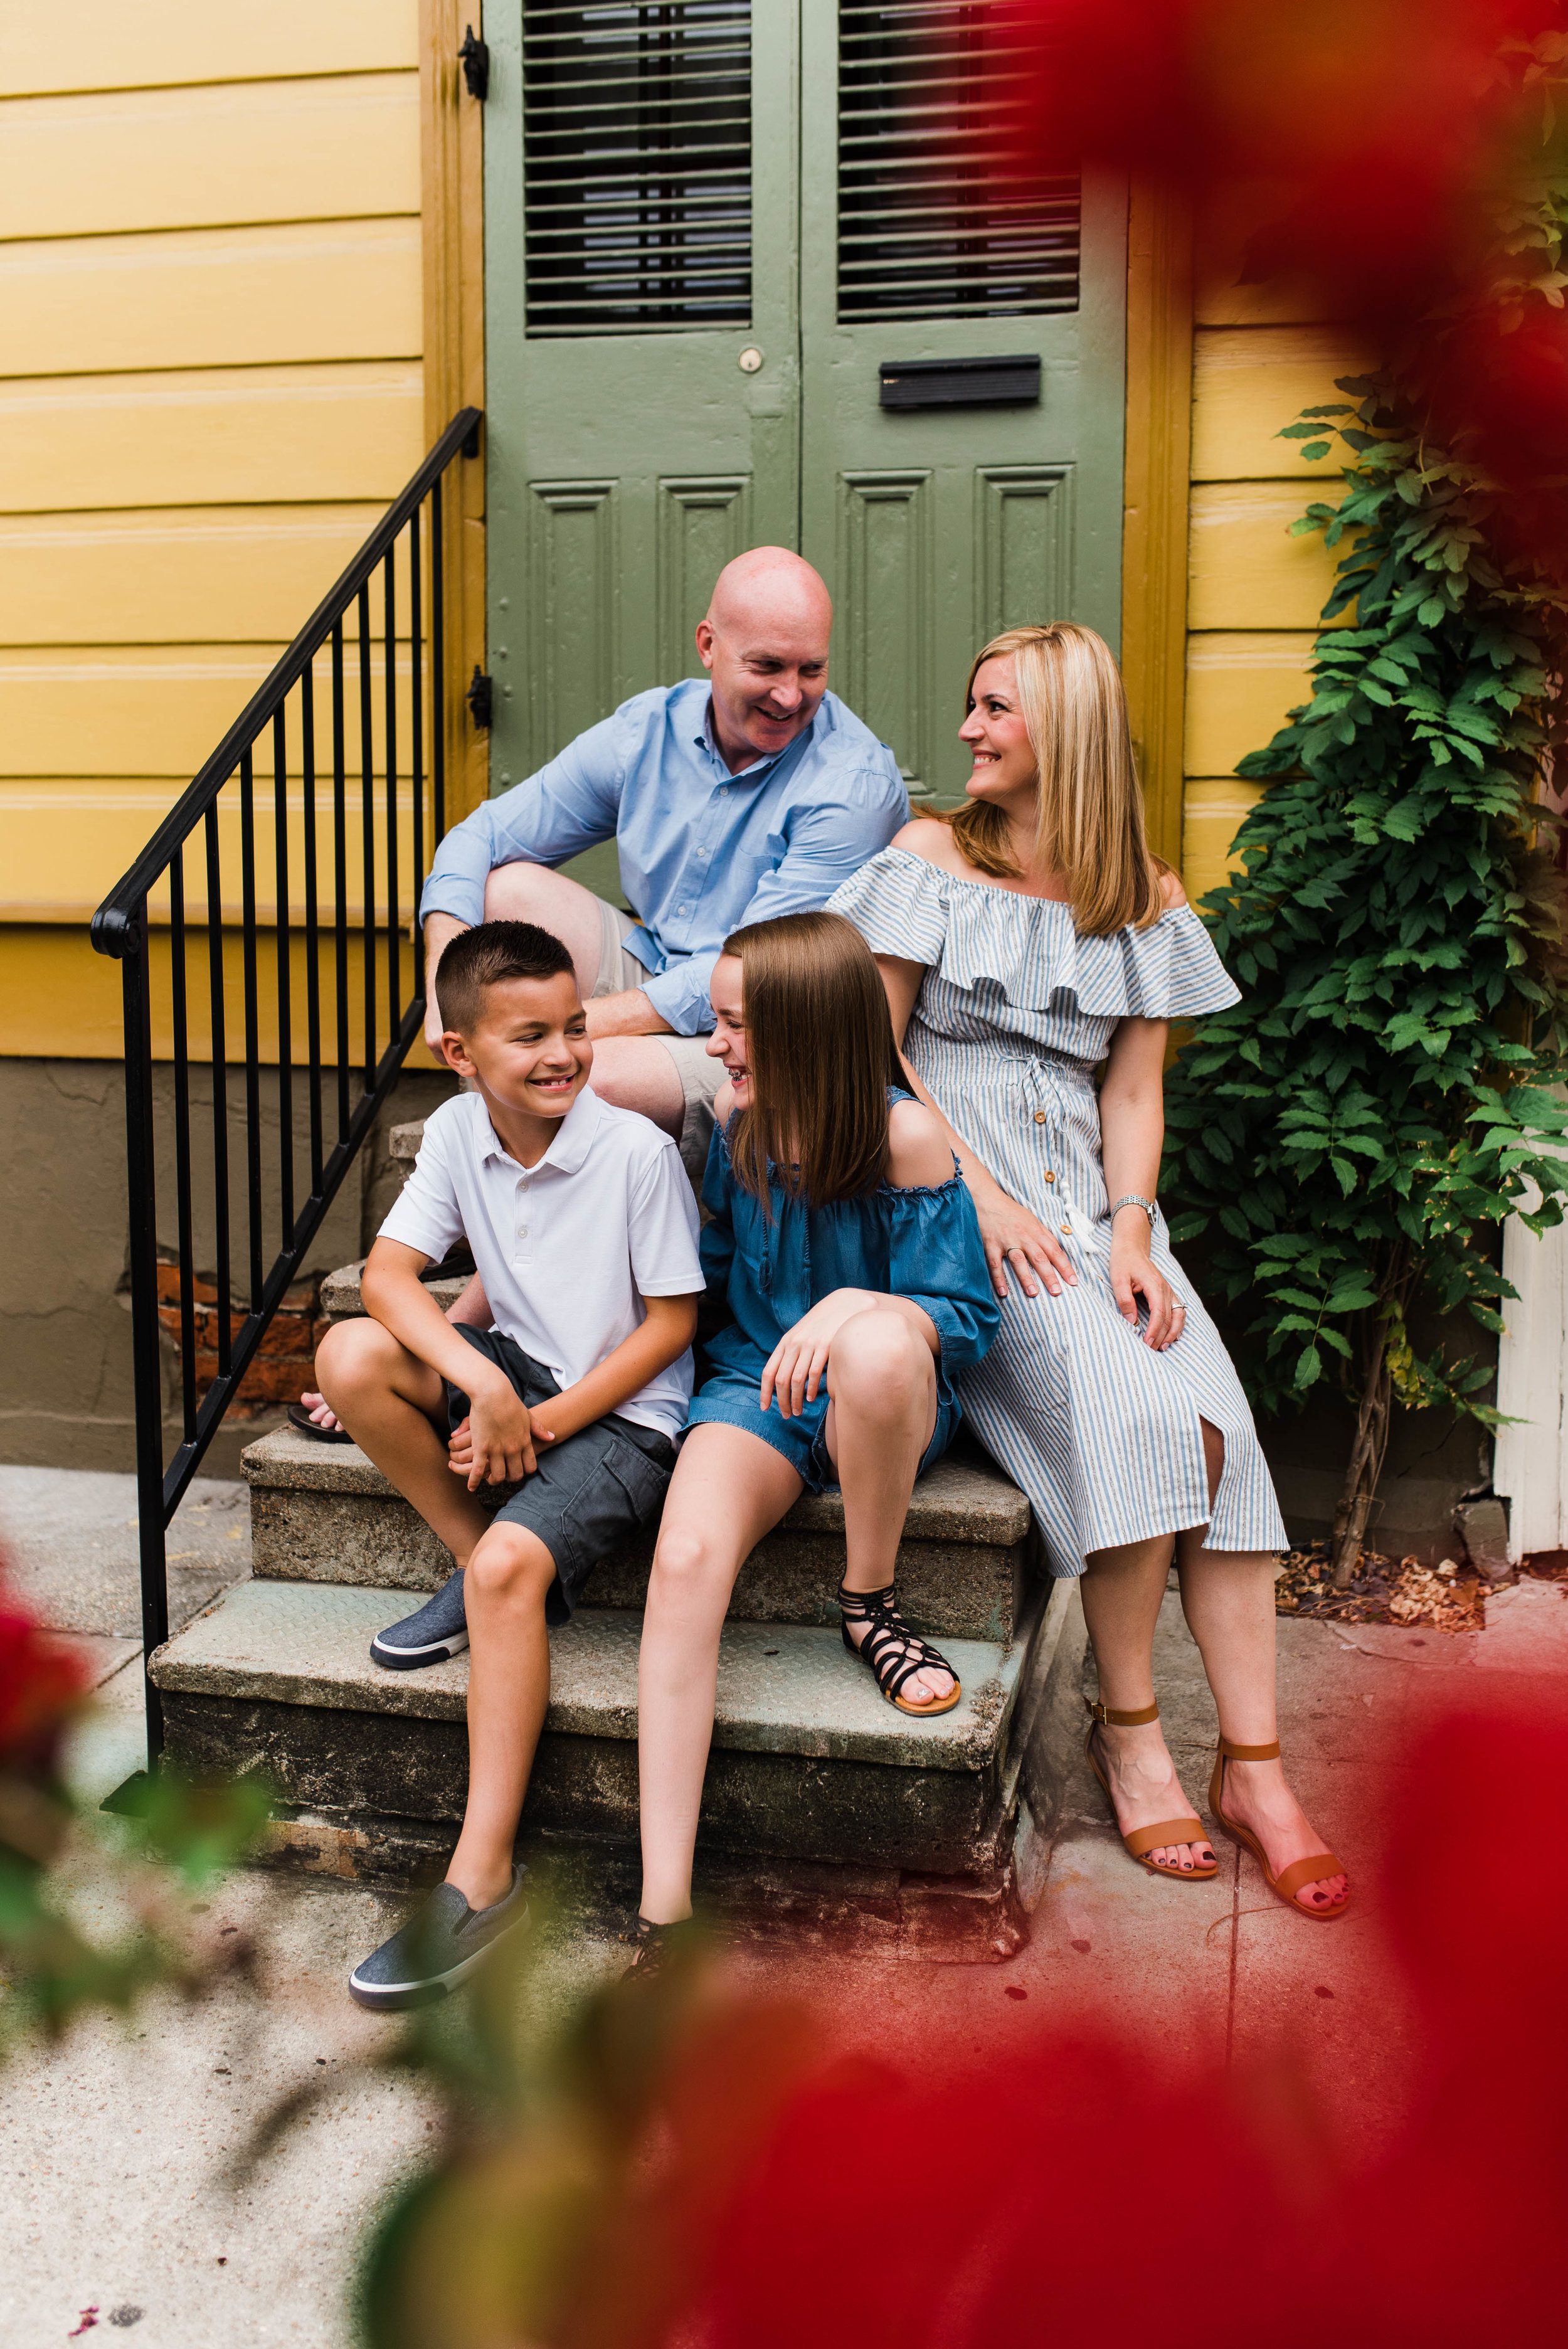 Conrad-Family-Photos-New-Orleans-French-Quarter_Gabby Chapin Photography_0025.jpg